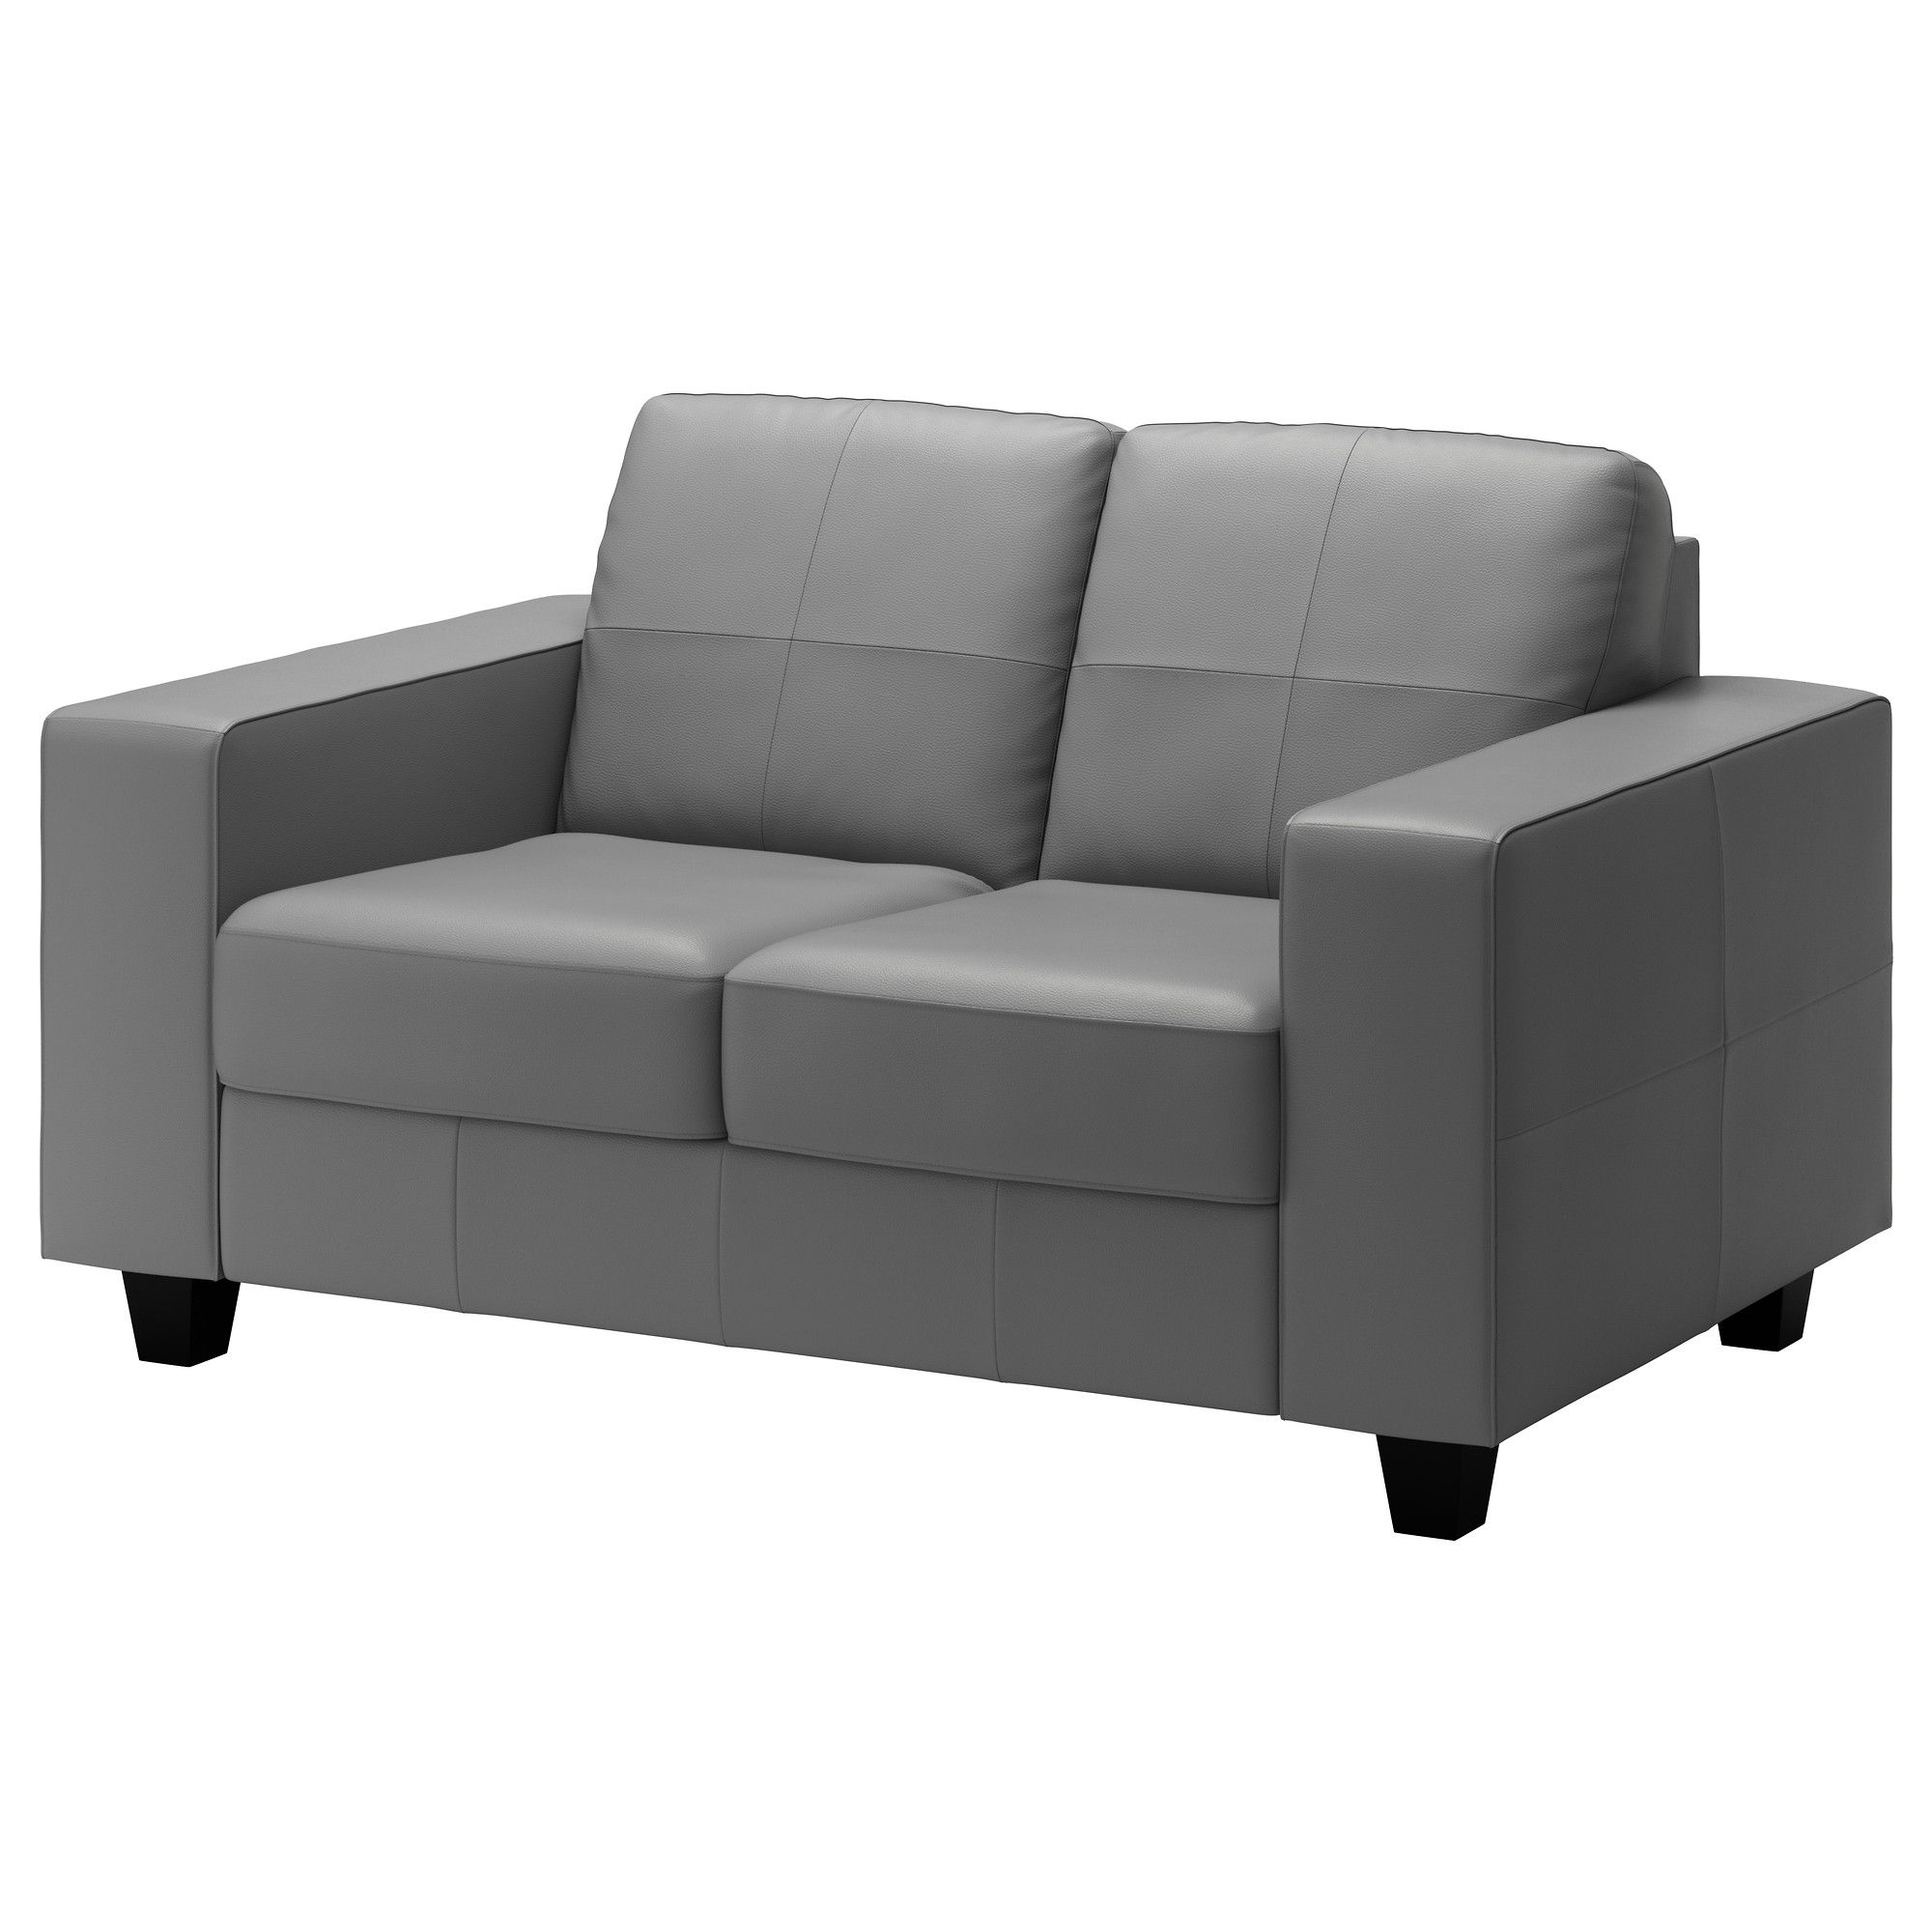 Loveseat Ikea Skogaby Loveseat Robust Medium Gray Ikea 579 Apartment